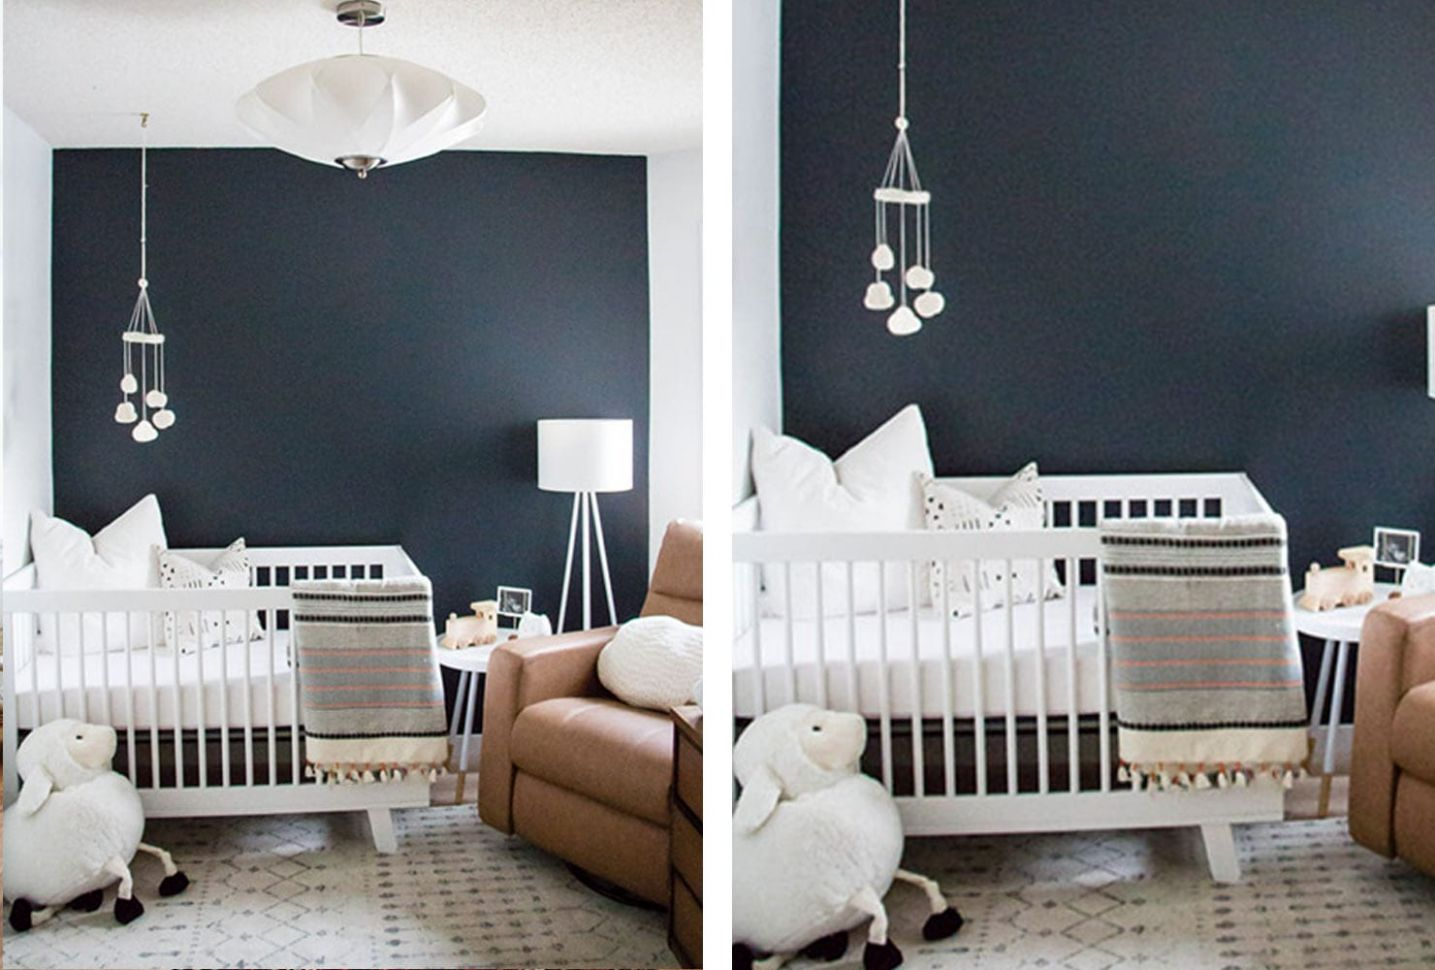 10+ Cute Baby Boy Room Ideas | Shutterfly - baby room accent wall